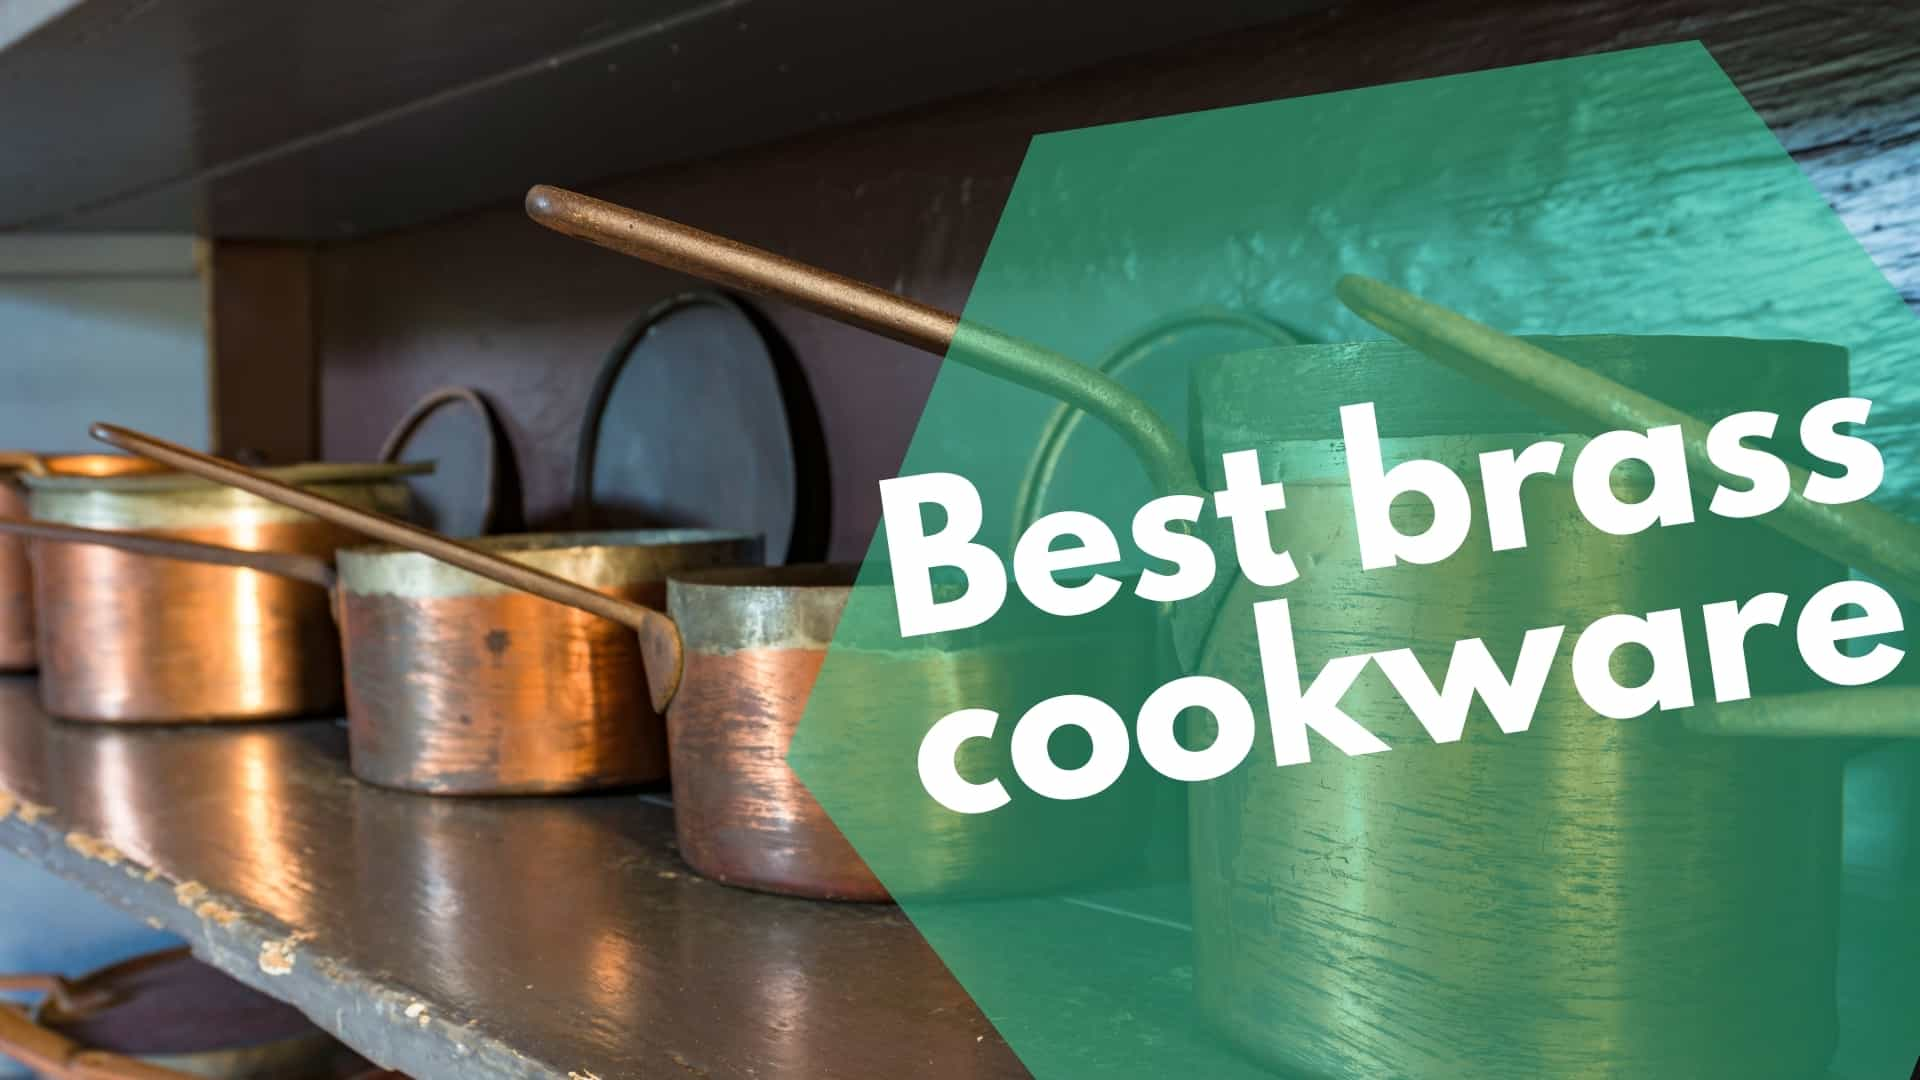 Best brass cookware